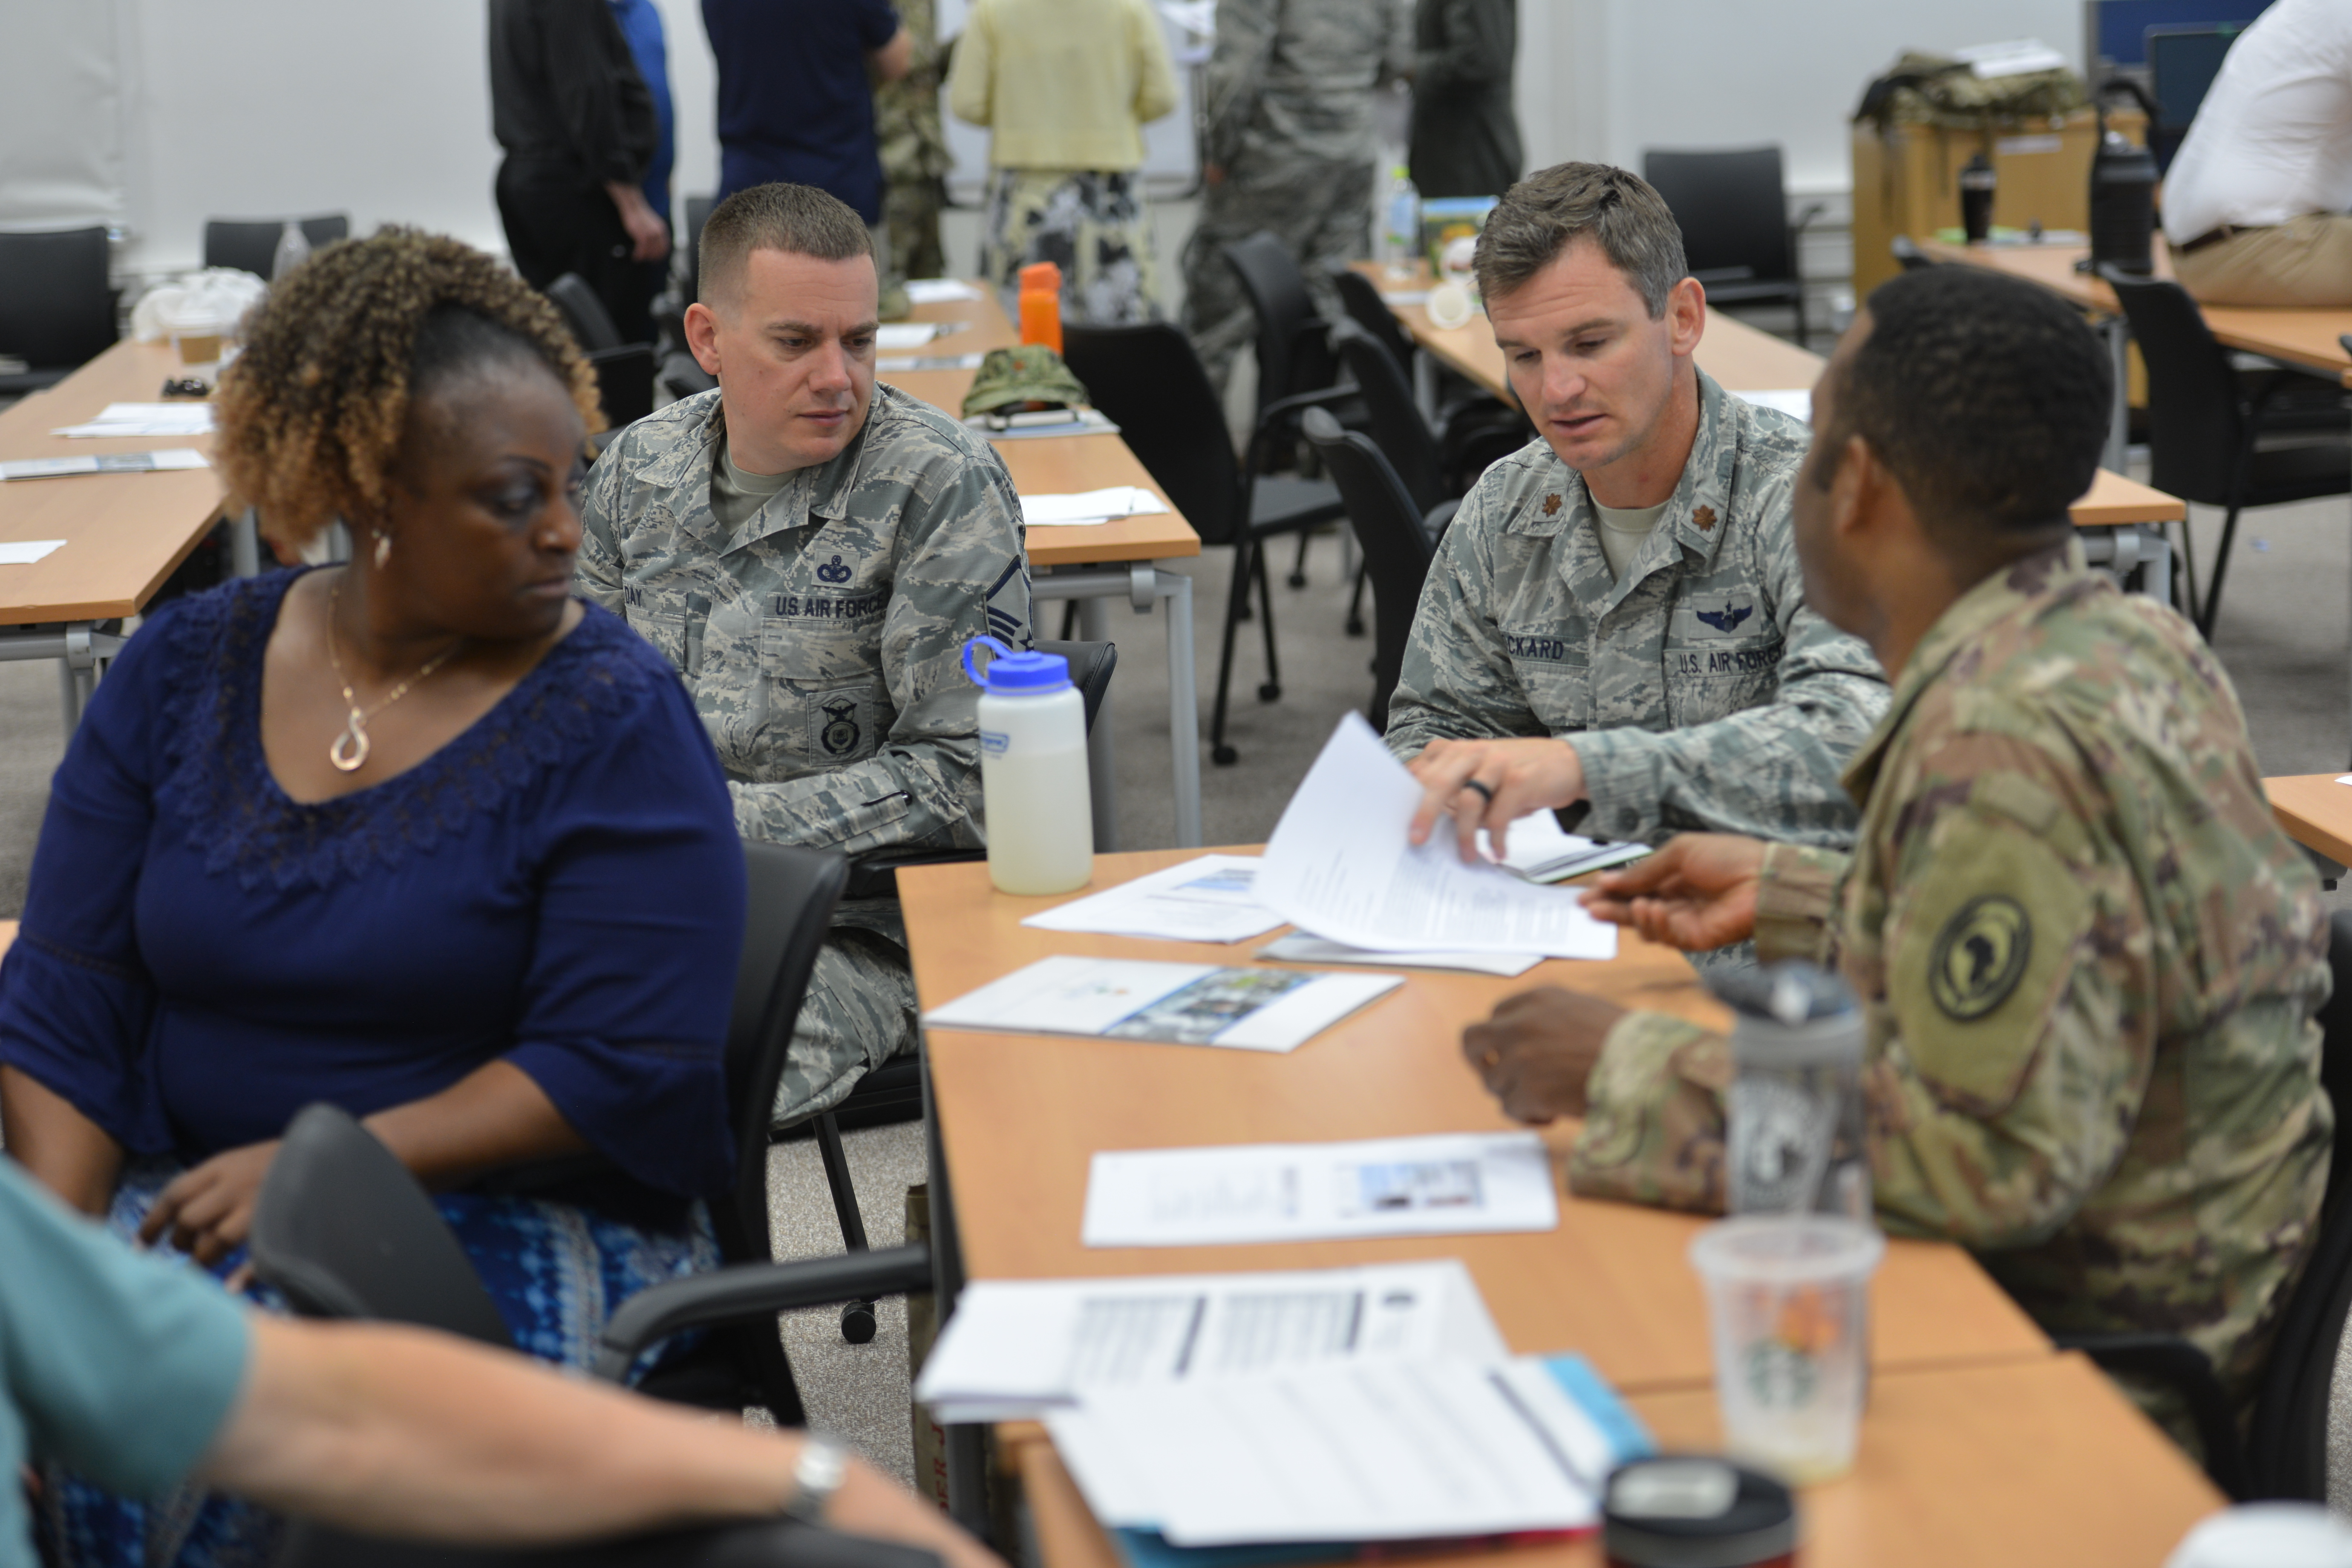 STUTTGART, Germany—Staff members from U.S. Africa Command work as a team to complete a group assignment on humanitarian assistance and disaster relief response at the Humanitarian Assistance Response Training Course, June 26, 2019, at the Kelley Special Events Center, Stuttgart, Germany. AFRICOM held the HART event June 25-28, 2019, to train AFRICOM staff members on humanitarian assistance and disaster relief response. (Photo by Staff Sgt. Grady Jones, Public Affairs, AFRICOM)